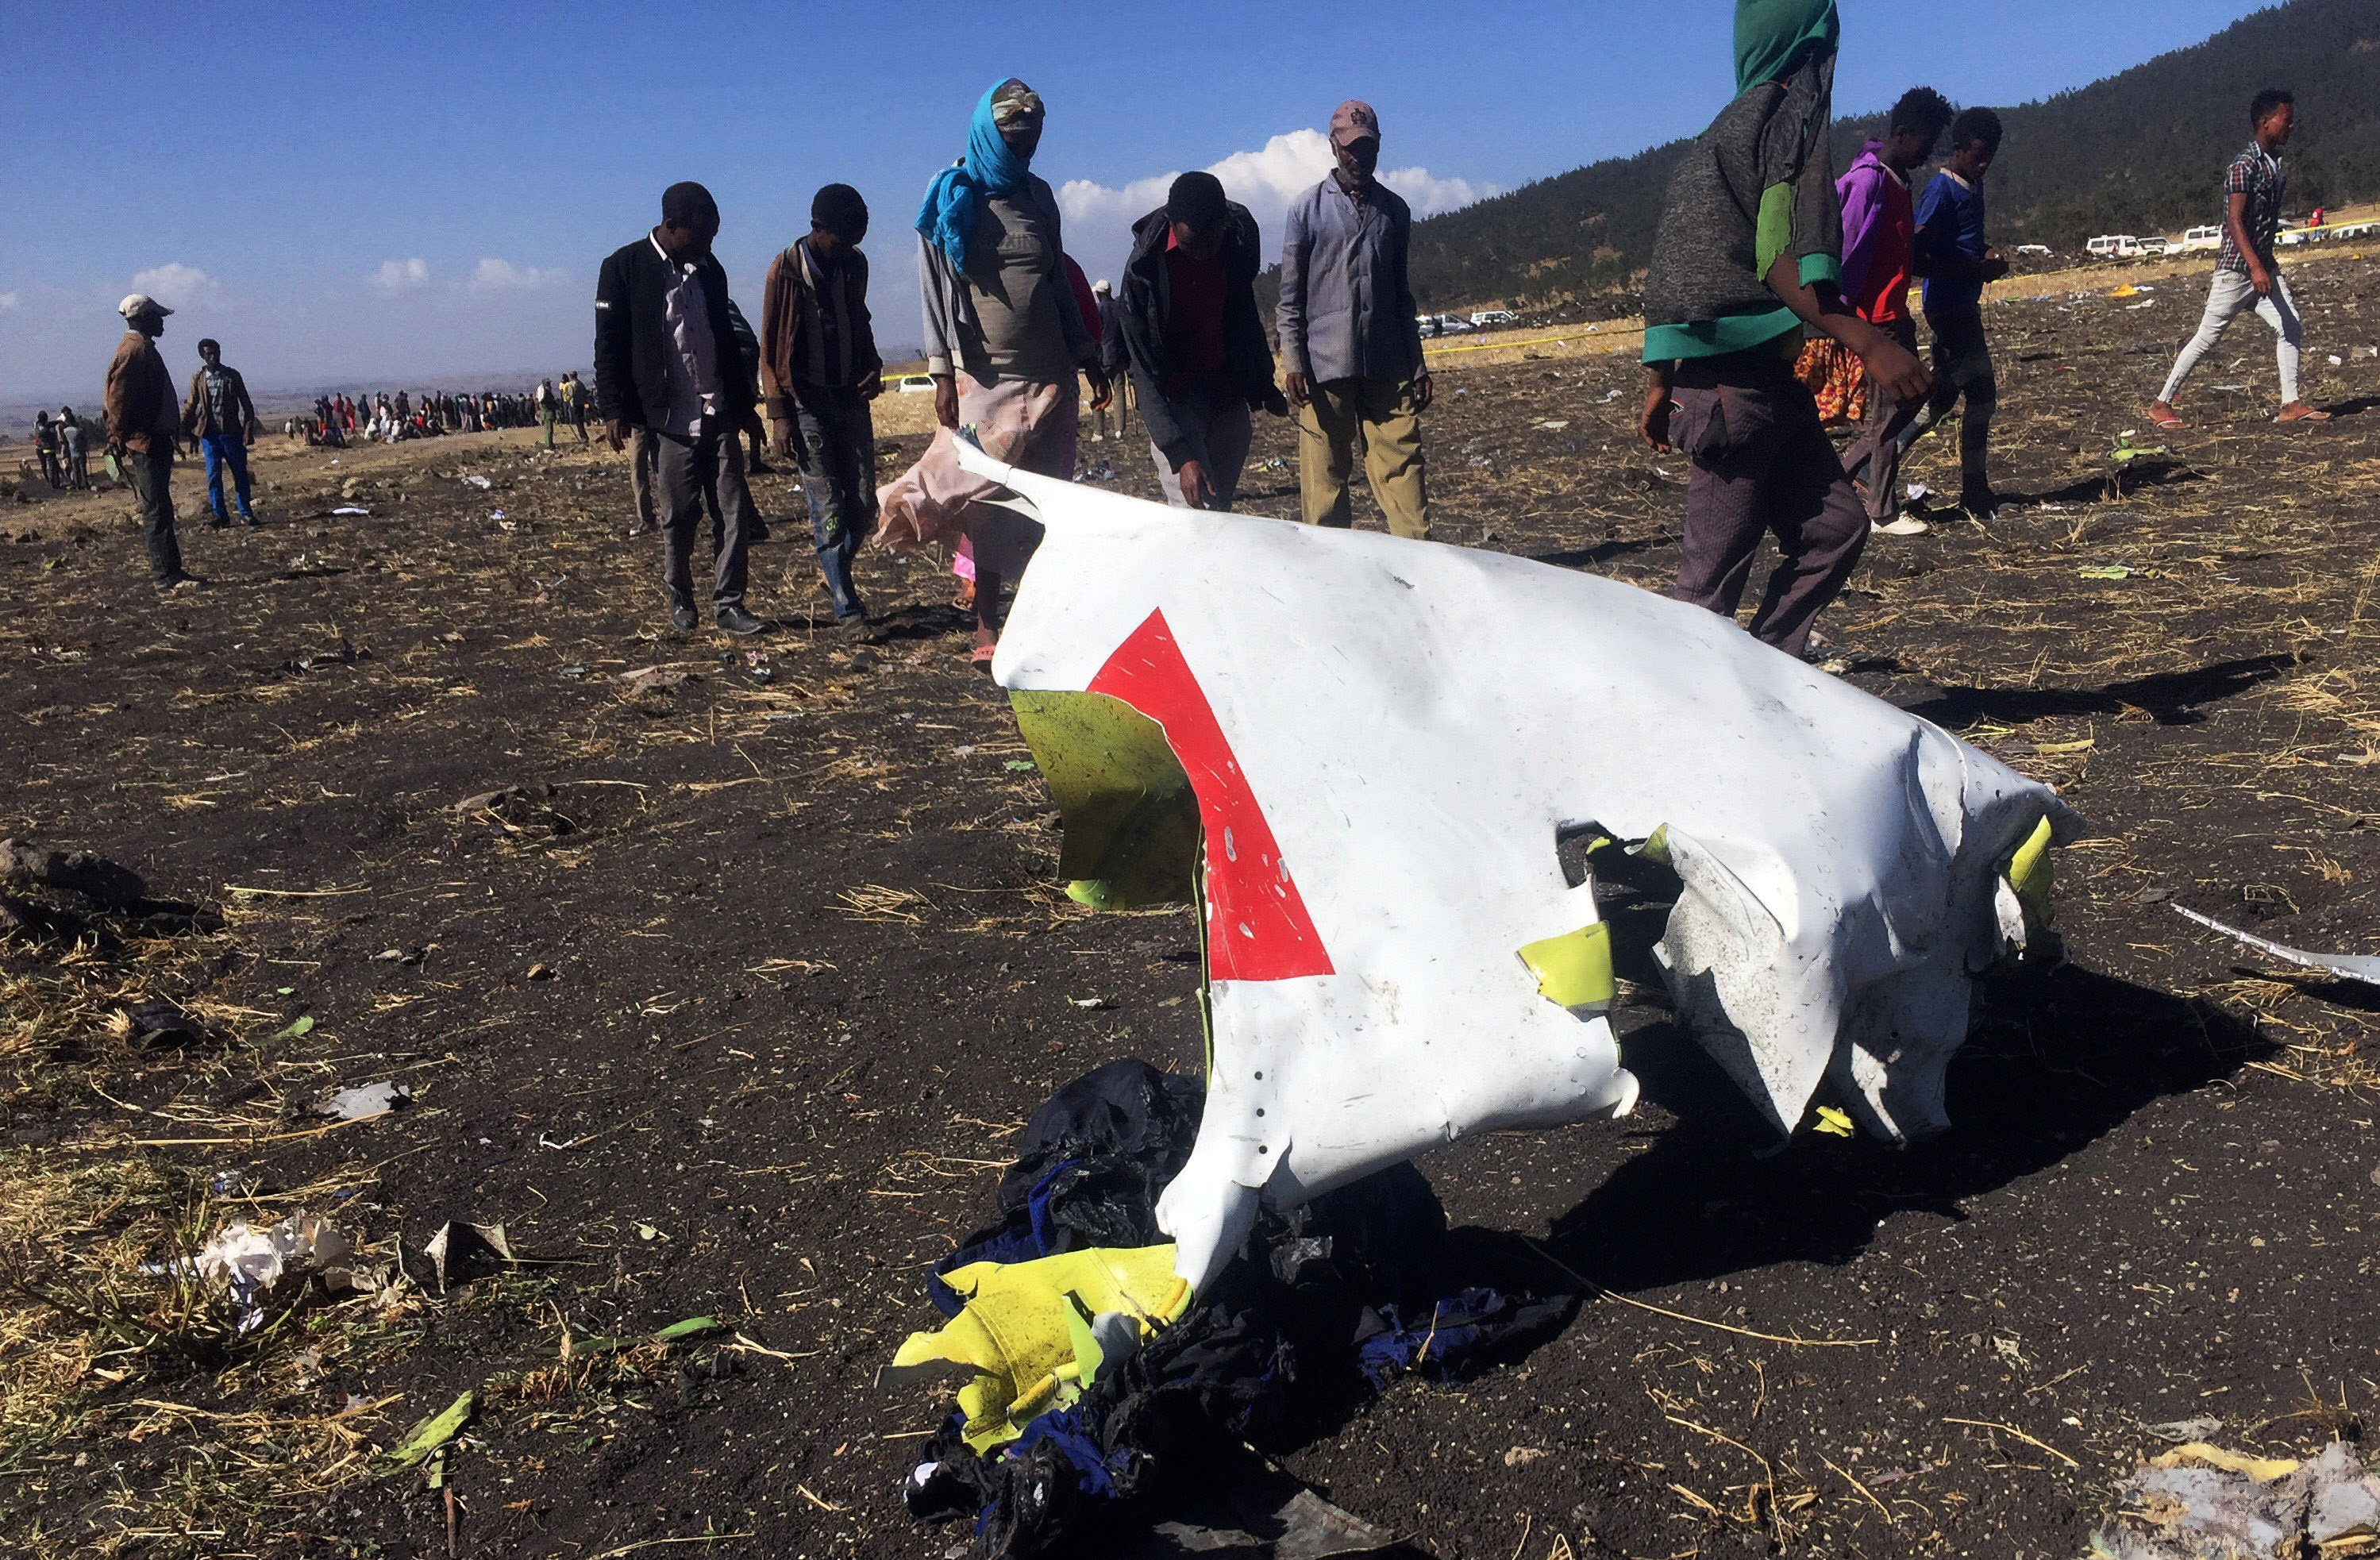 People walk past a part of the wreckage at the scene of the Ethiopian Airlines Flight ET 302 plane crash, near the town of Bishoftu, southeast of Addis Ababa, Ethiopia on March 10, 2019.